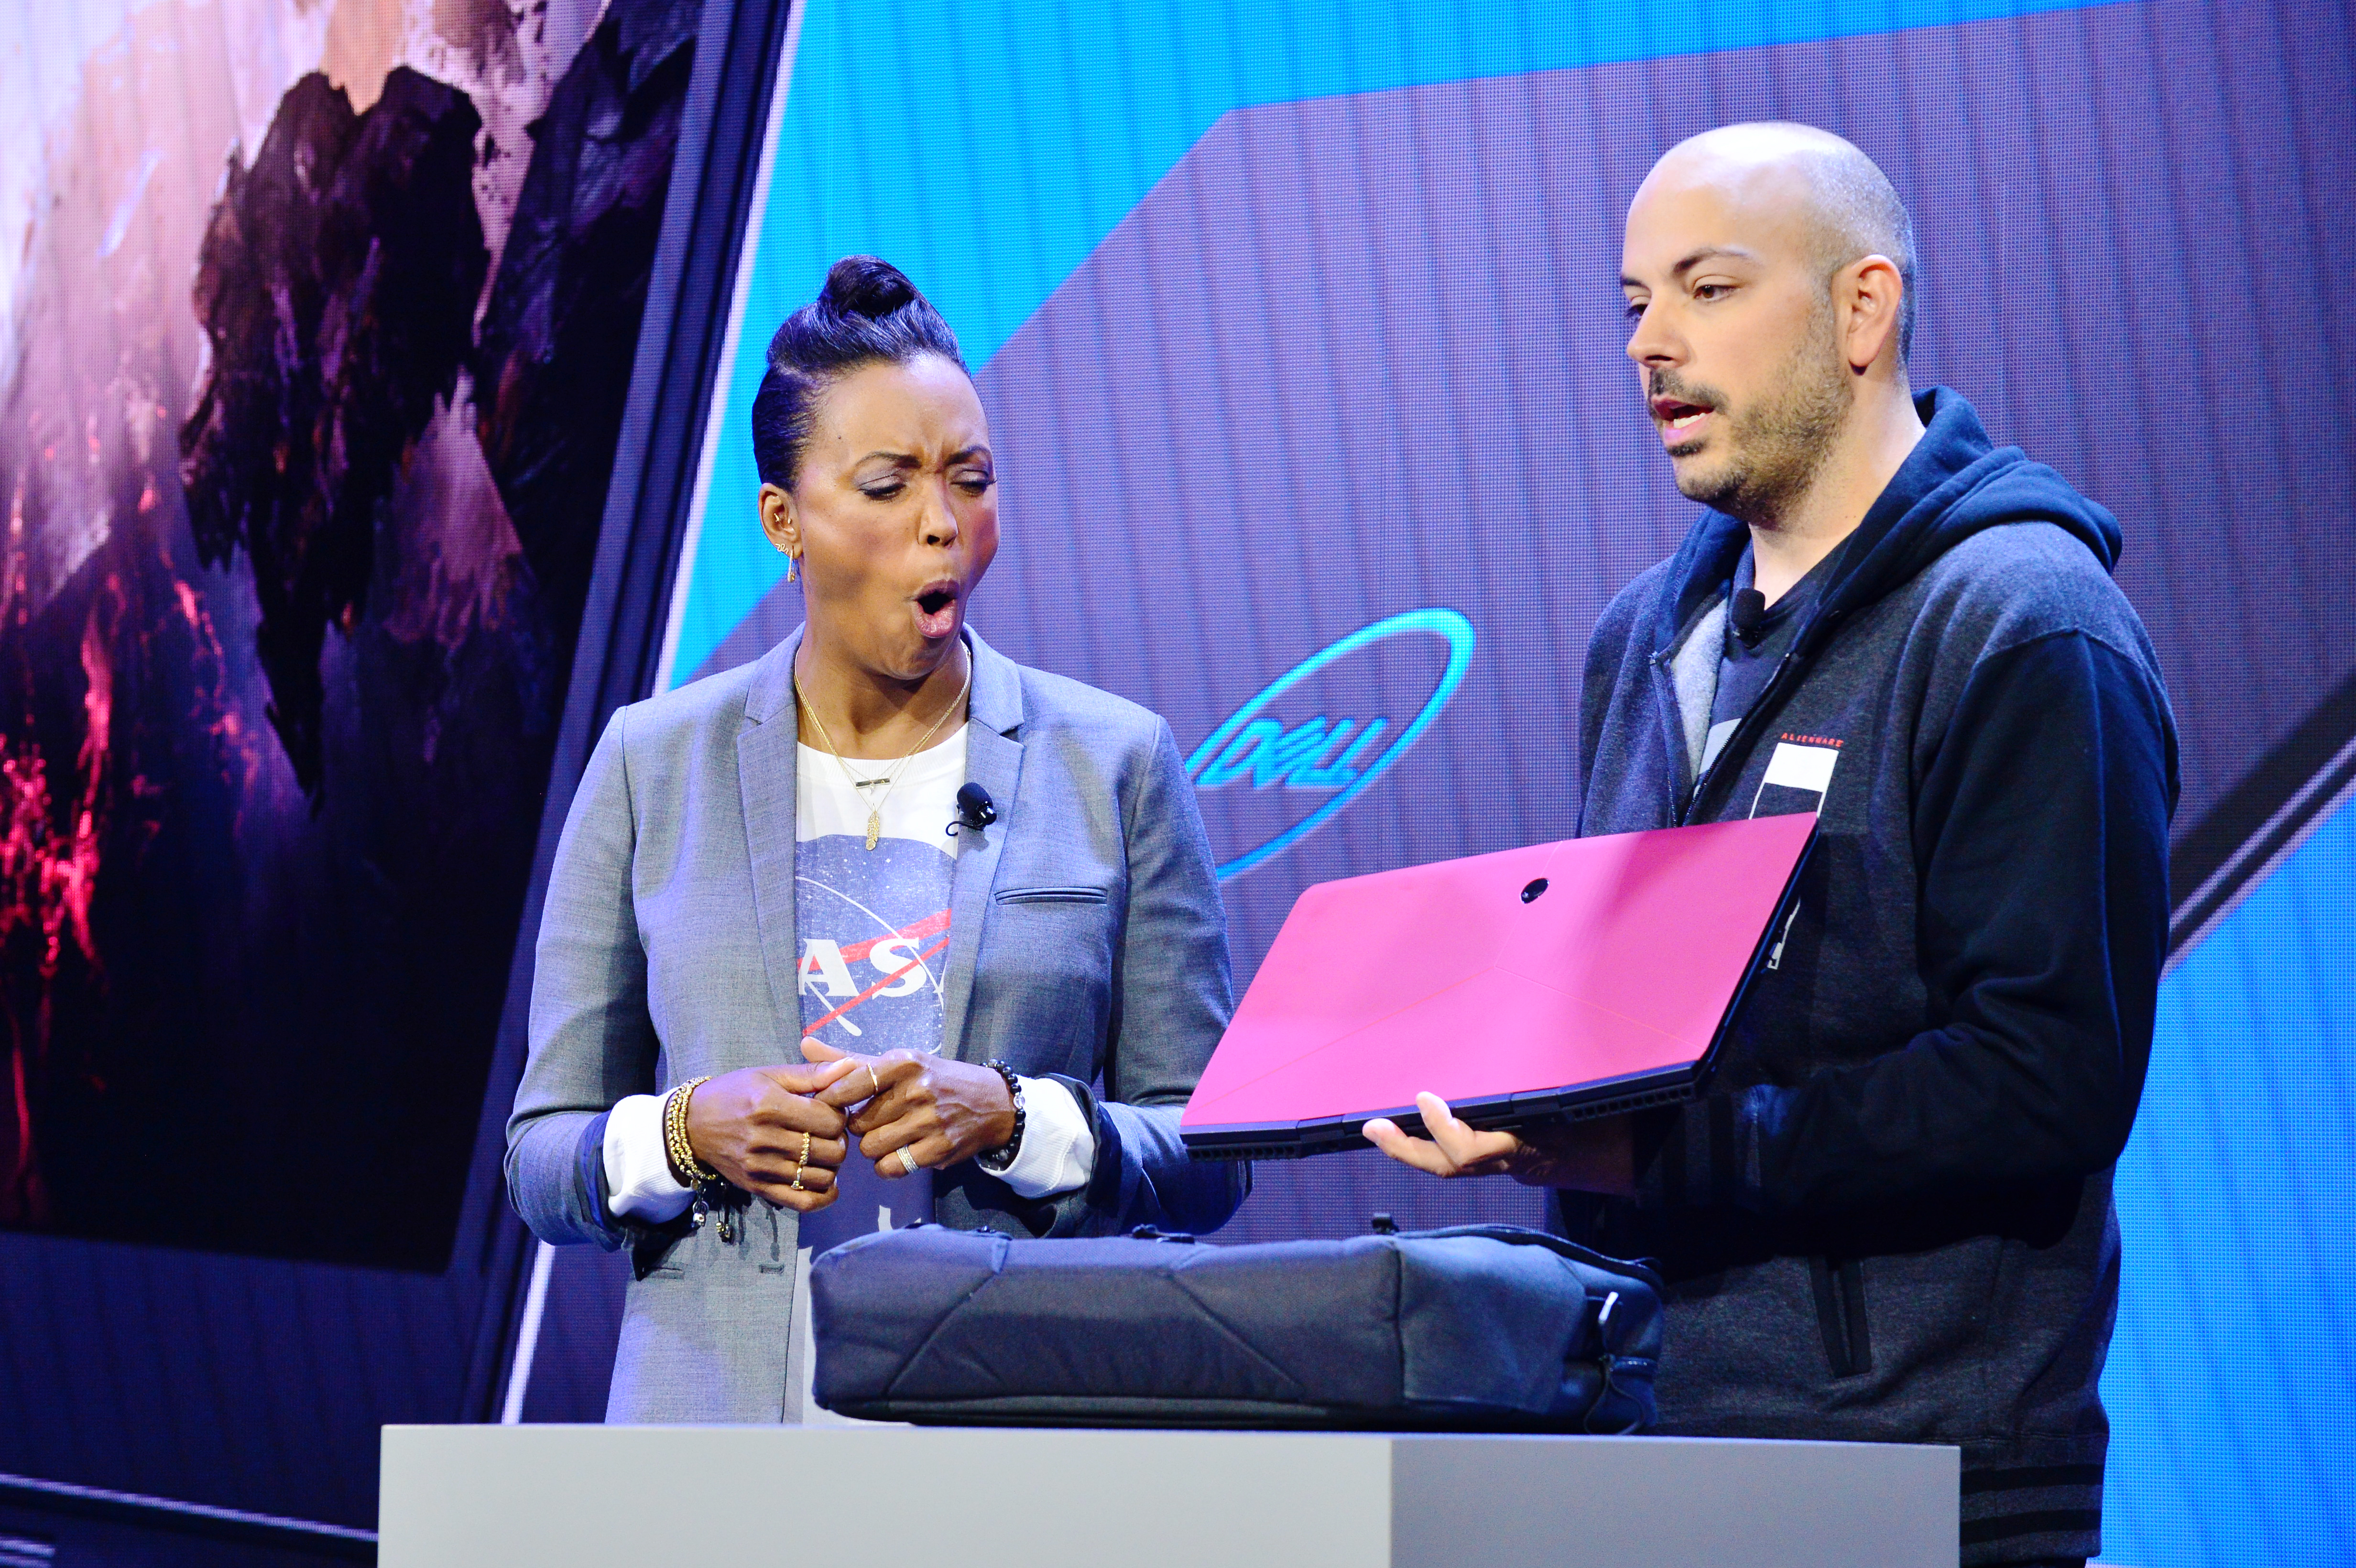 Actress And Director Aisha Tyler Join #DellExperience At CES 2019